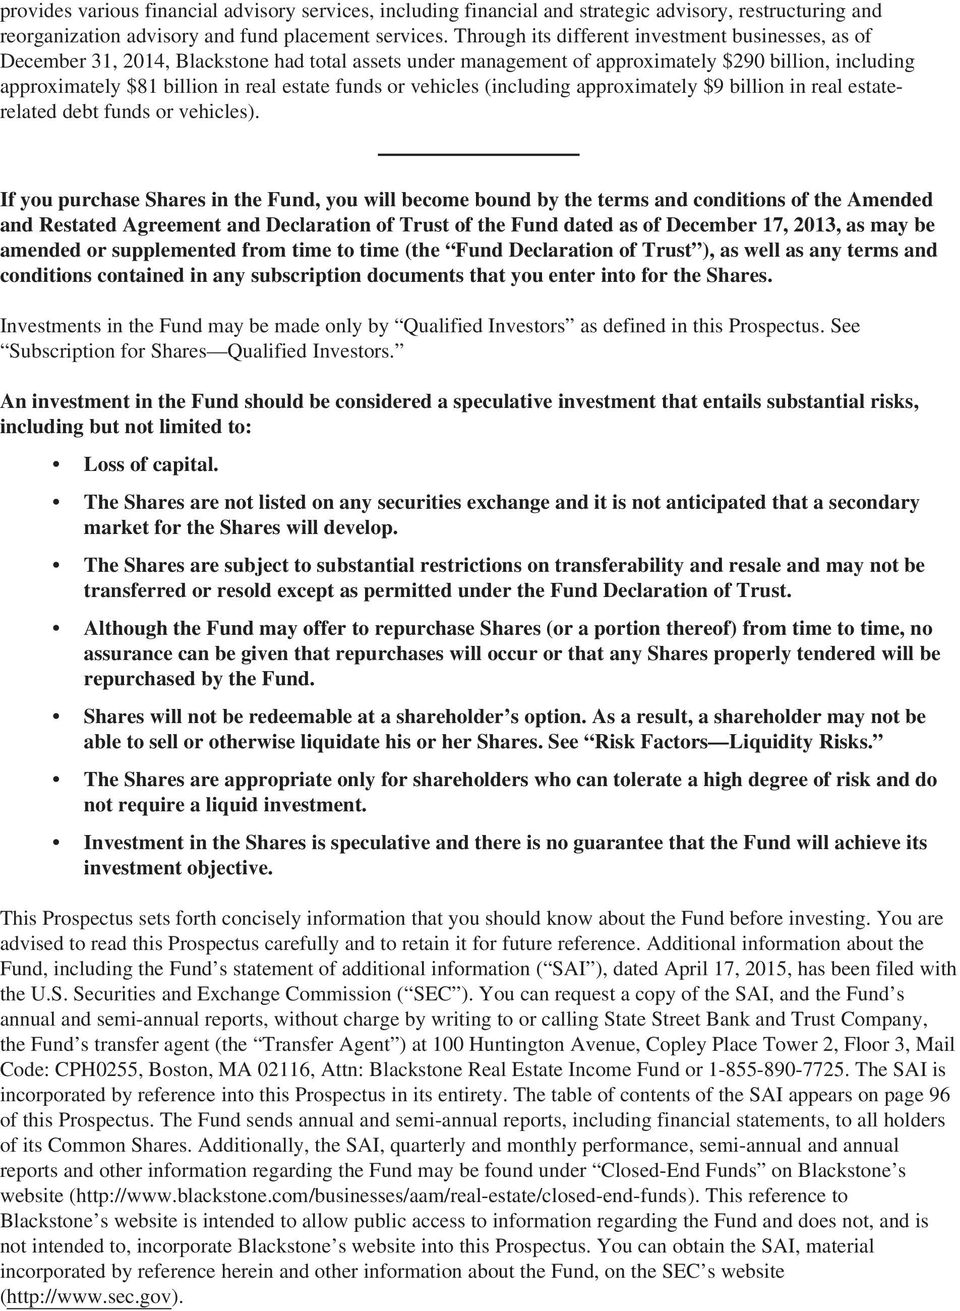 Blackstone real estate income fund pdf funds or vehicles including approximately 9 billion in real estaterelated debt funds or vehicles platinumwayz